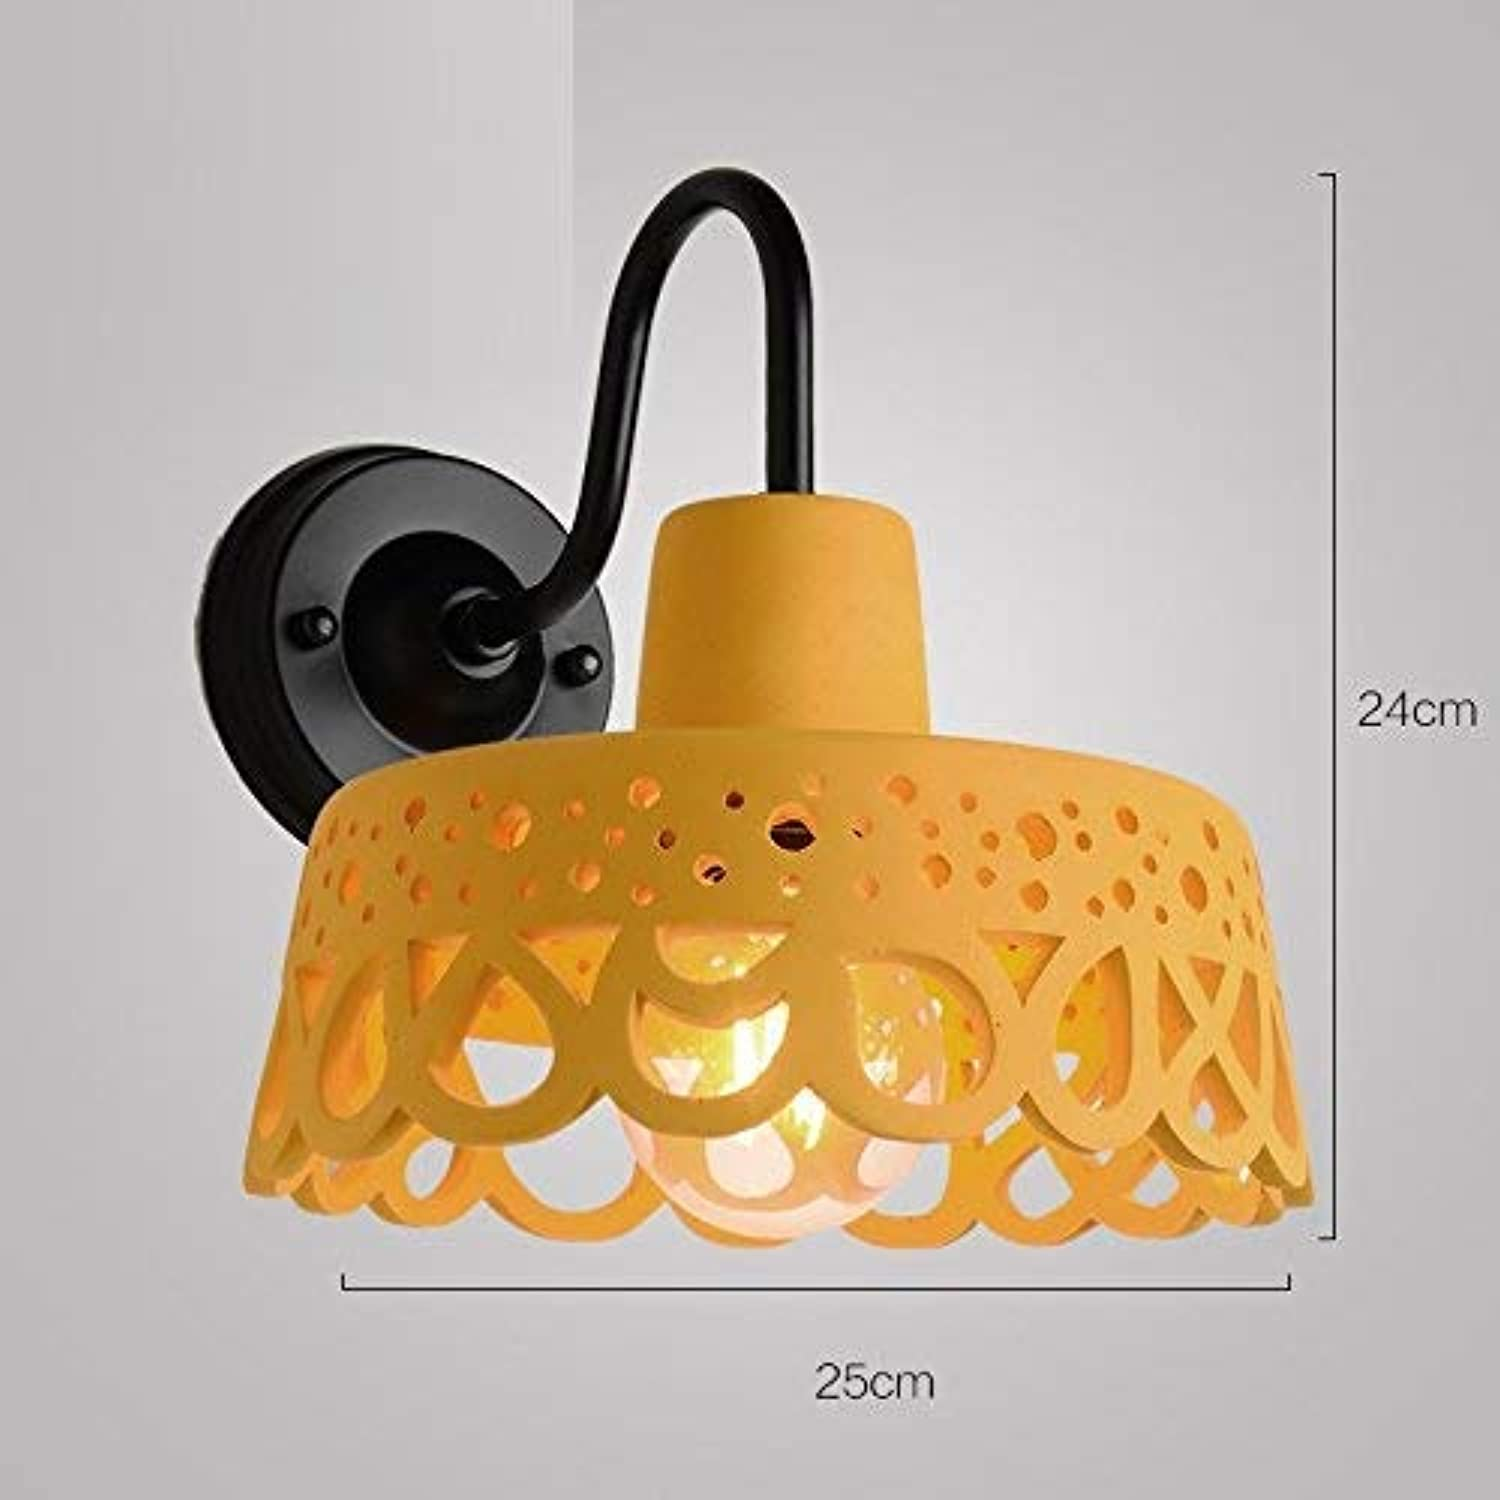 WALL LIGHT HOME Bathroom Sink Basin Tap Brass Mixer Tap Washroom Mixer Faucet Kitchen faucet and cold water tap to wash dishes slot basin faucet kitchen faucet water tap